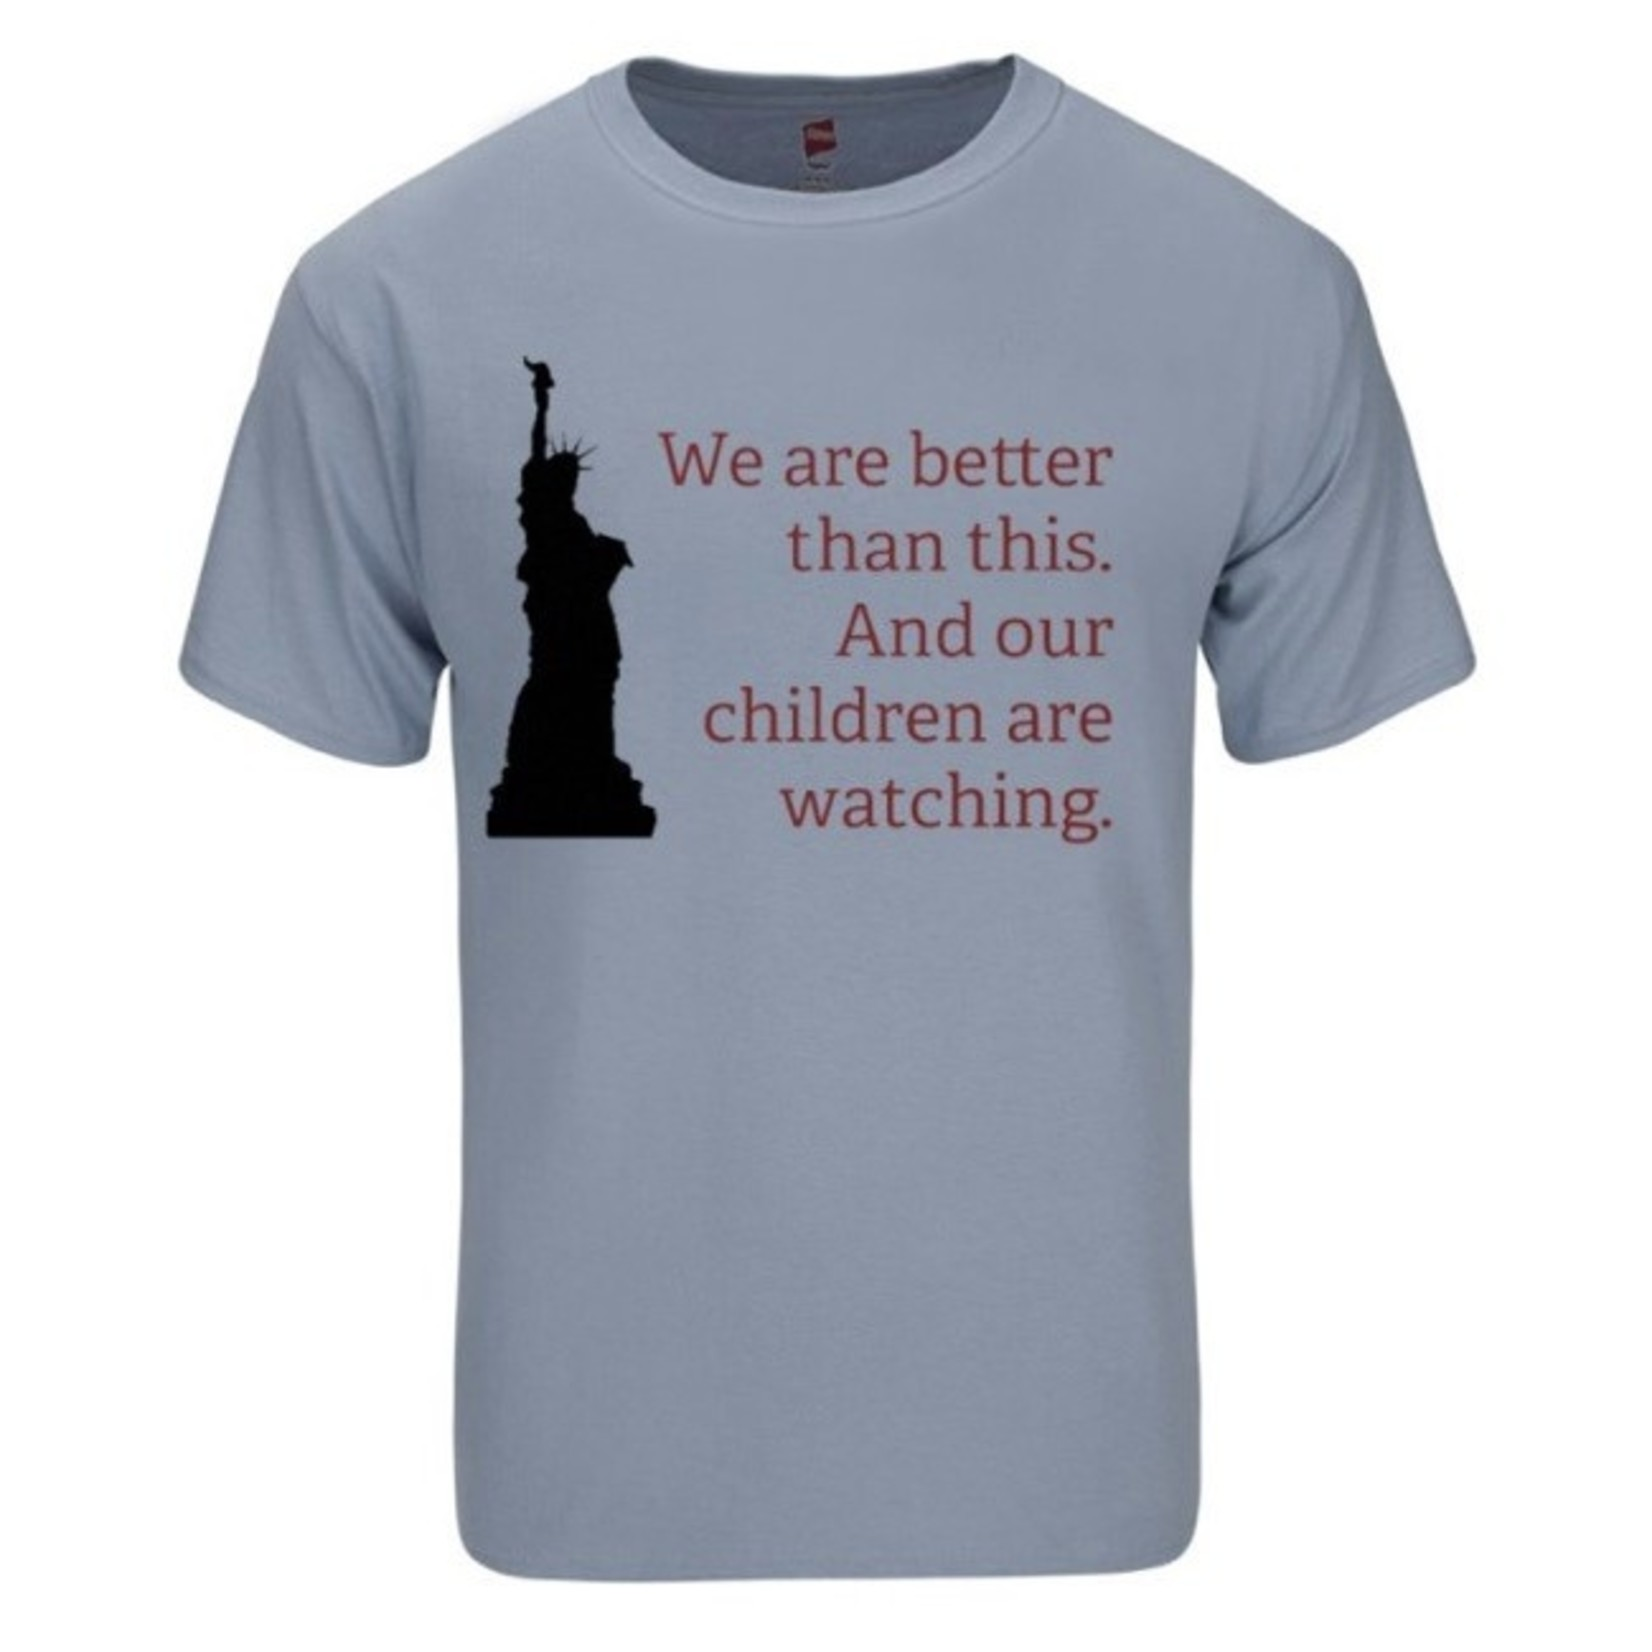 Bad Annie's T-Shirt - We Are Better, Children Are Watching